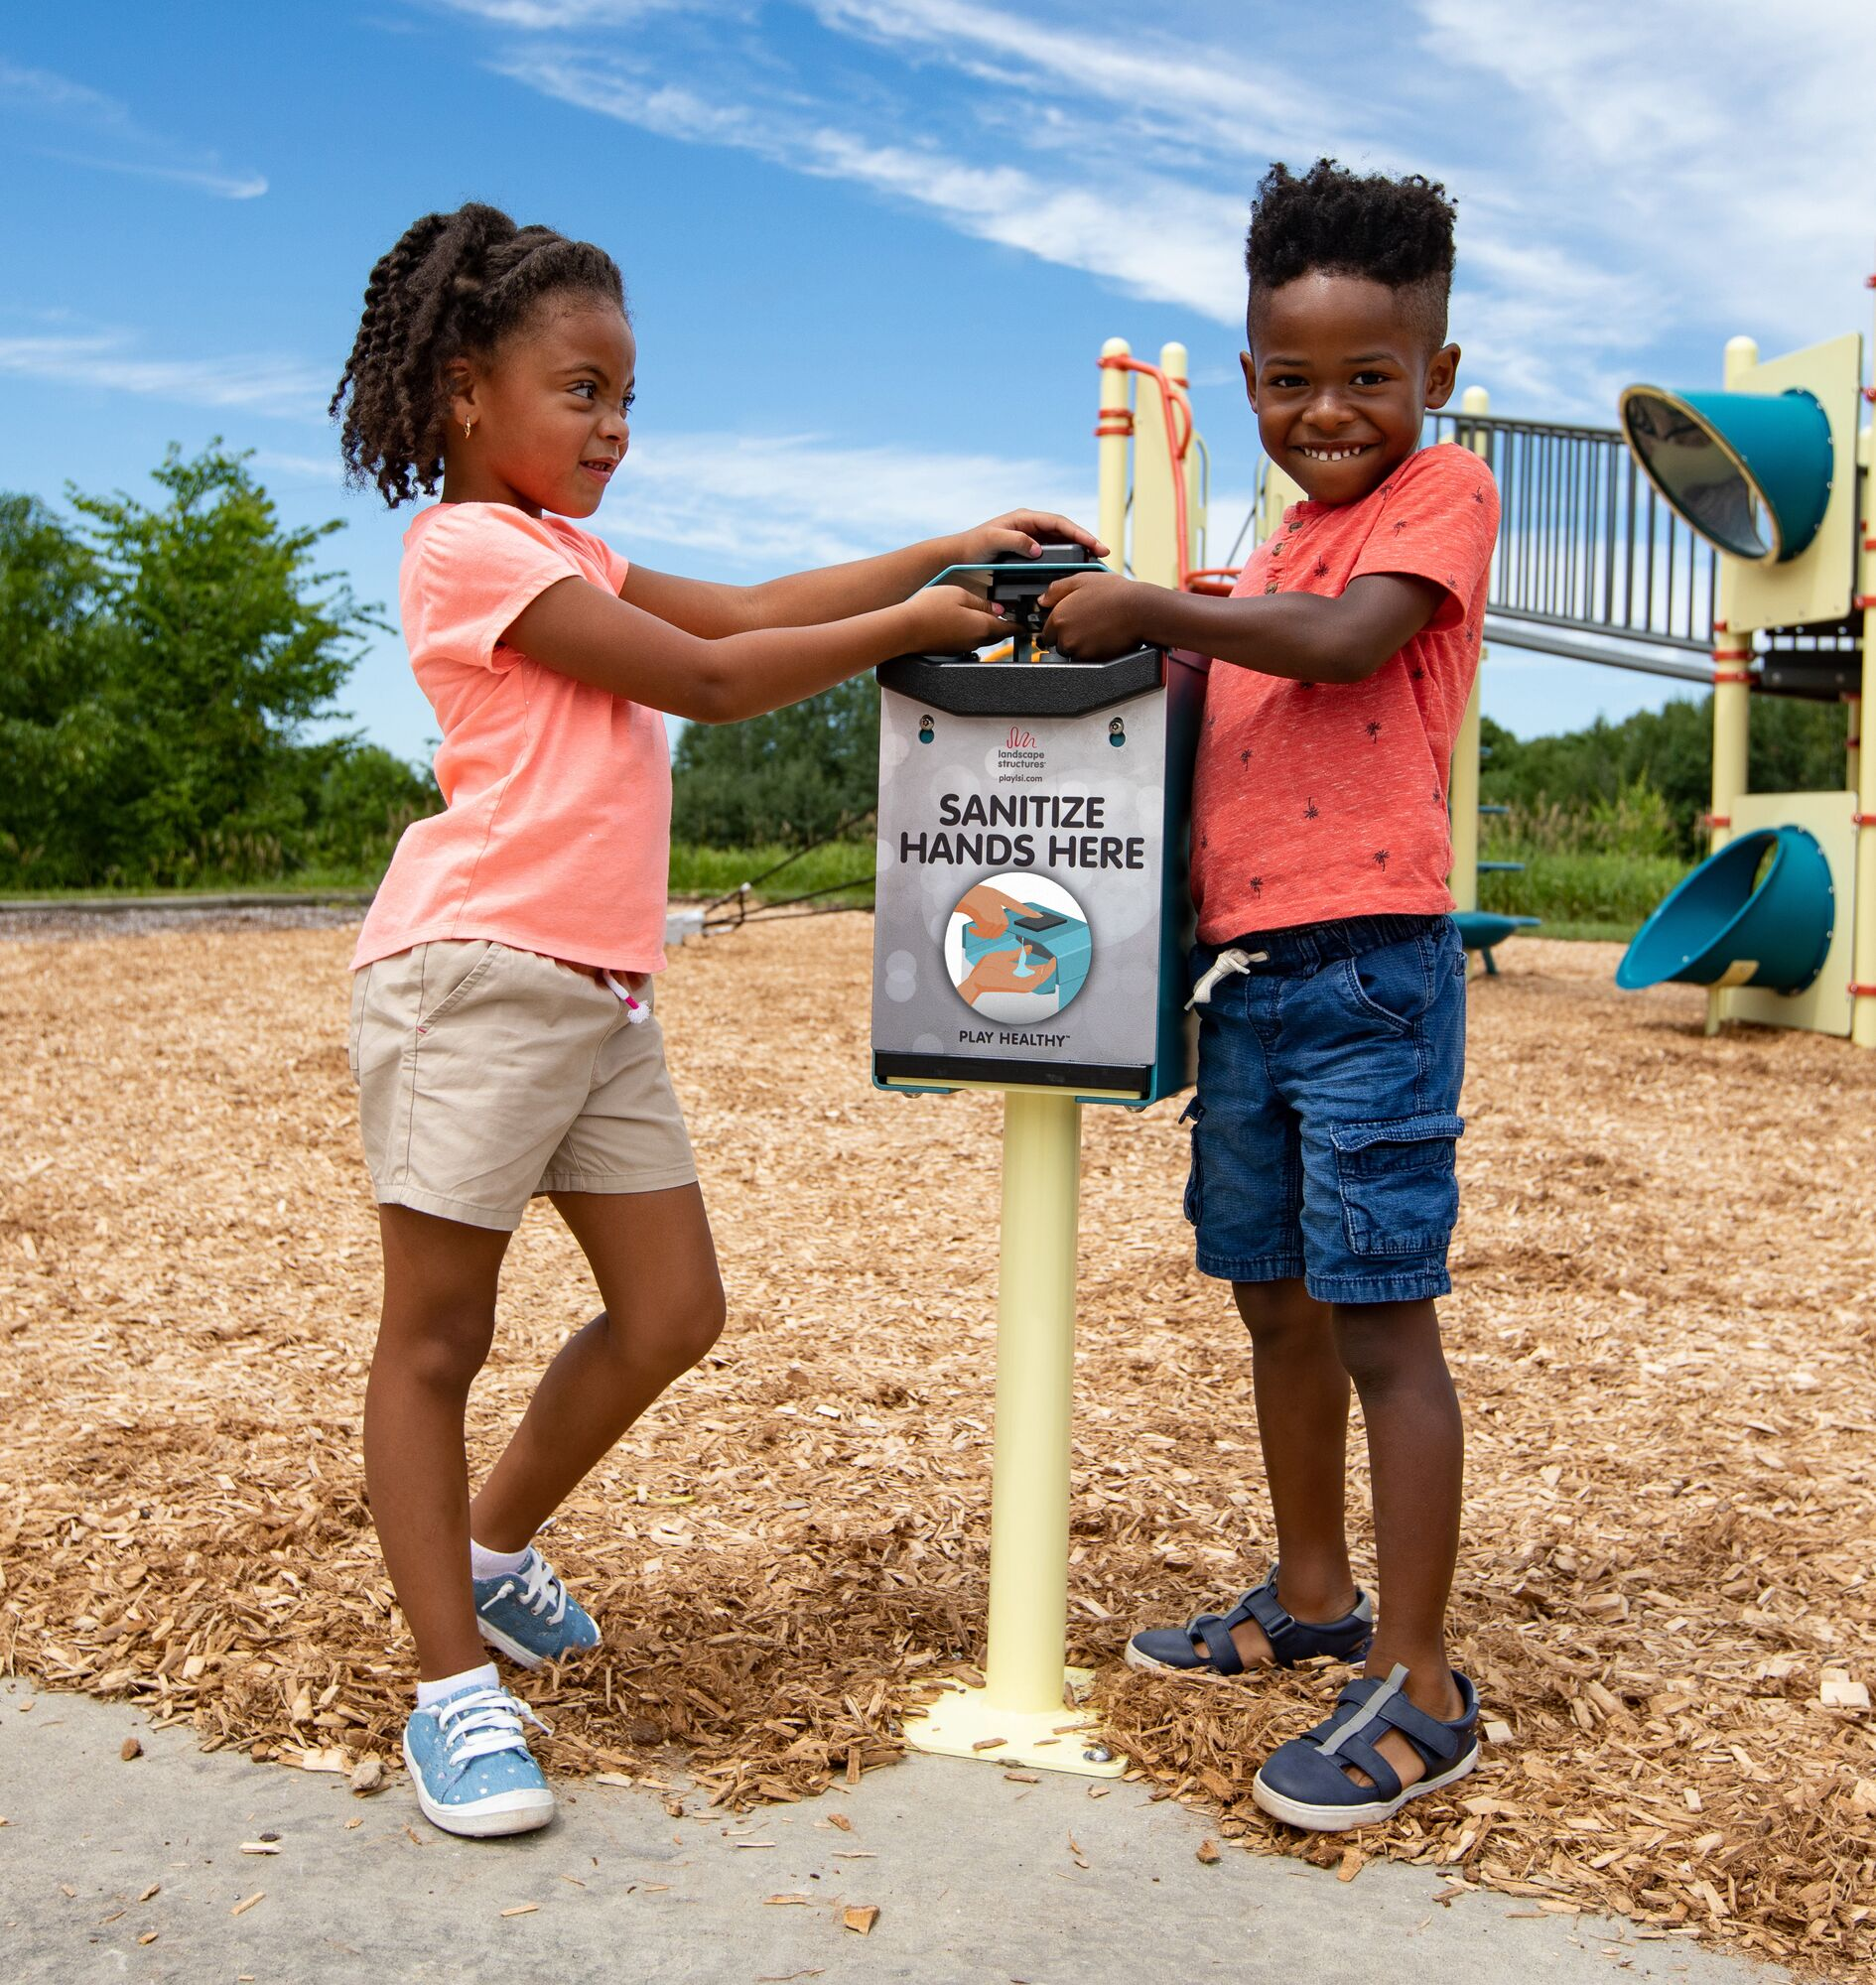 Together We Play Landscape Structures Bringing The Magic Of Play To Communities